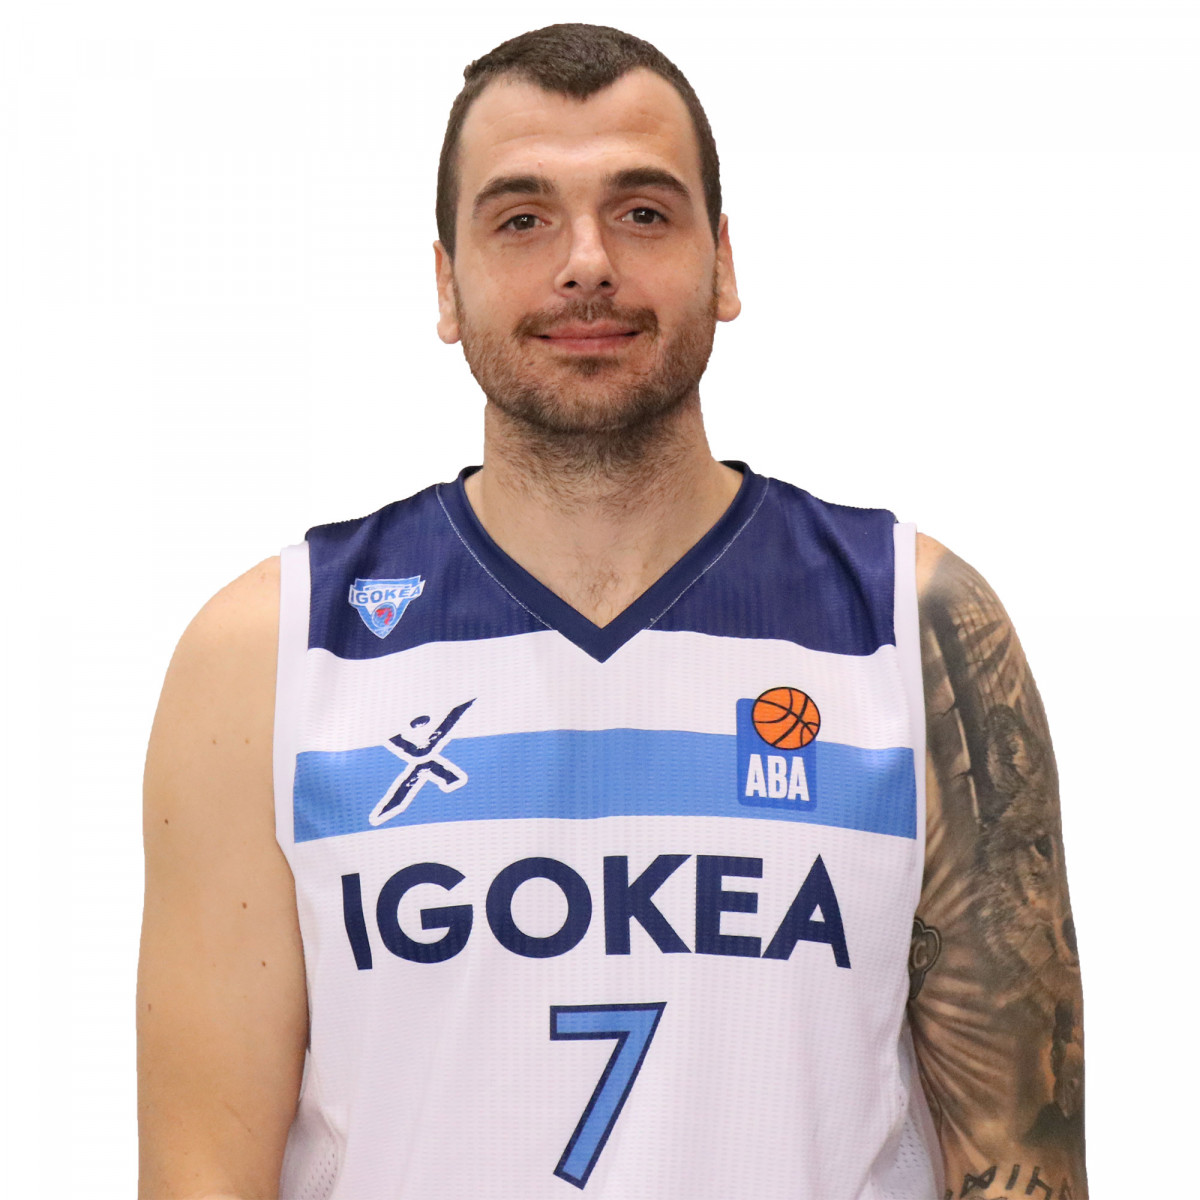 Photo of Sava Lesic, 2019-2020 season